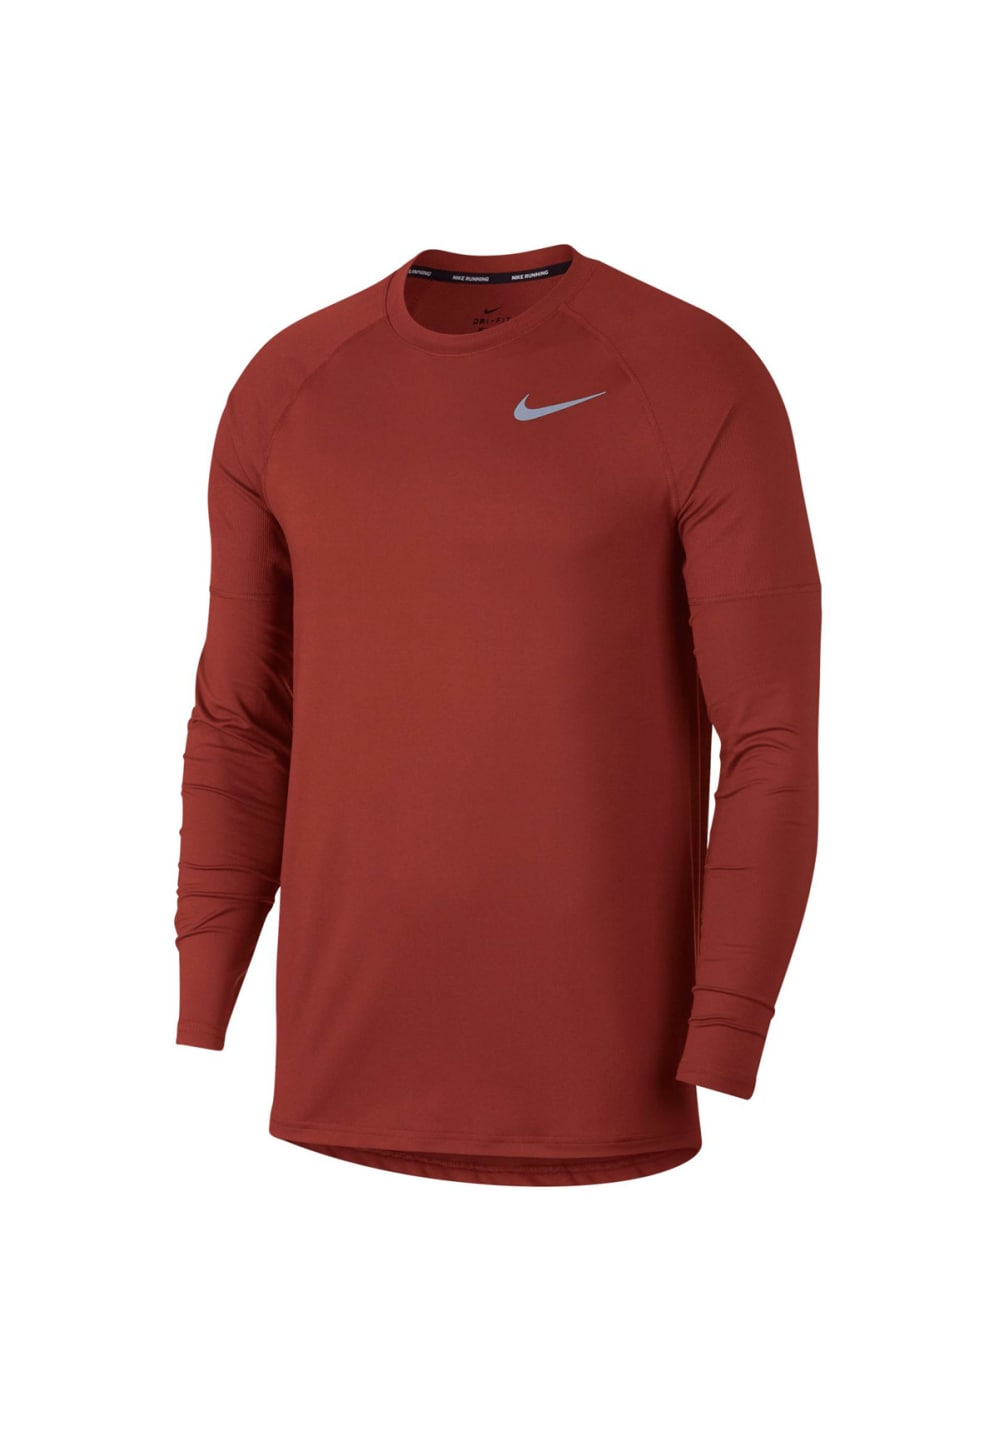 65f1afbb Nike Element Longsleeeve Running Crew - Running tops for Men - Red ...